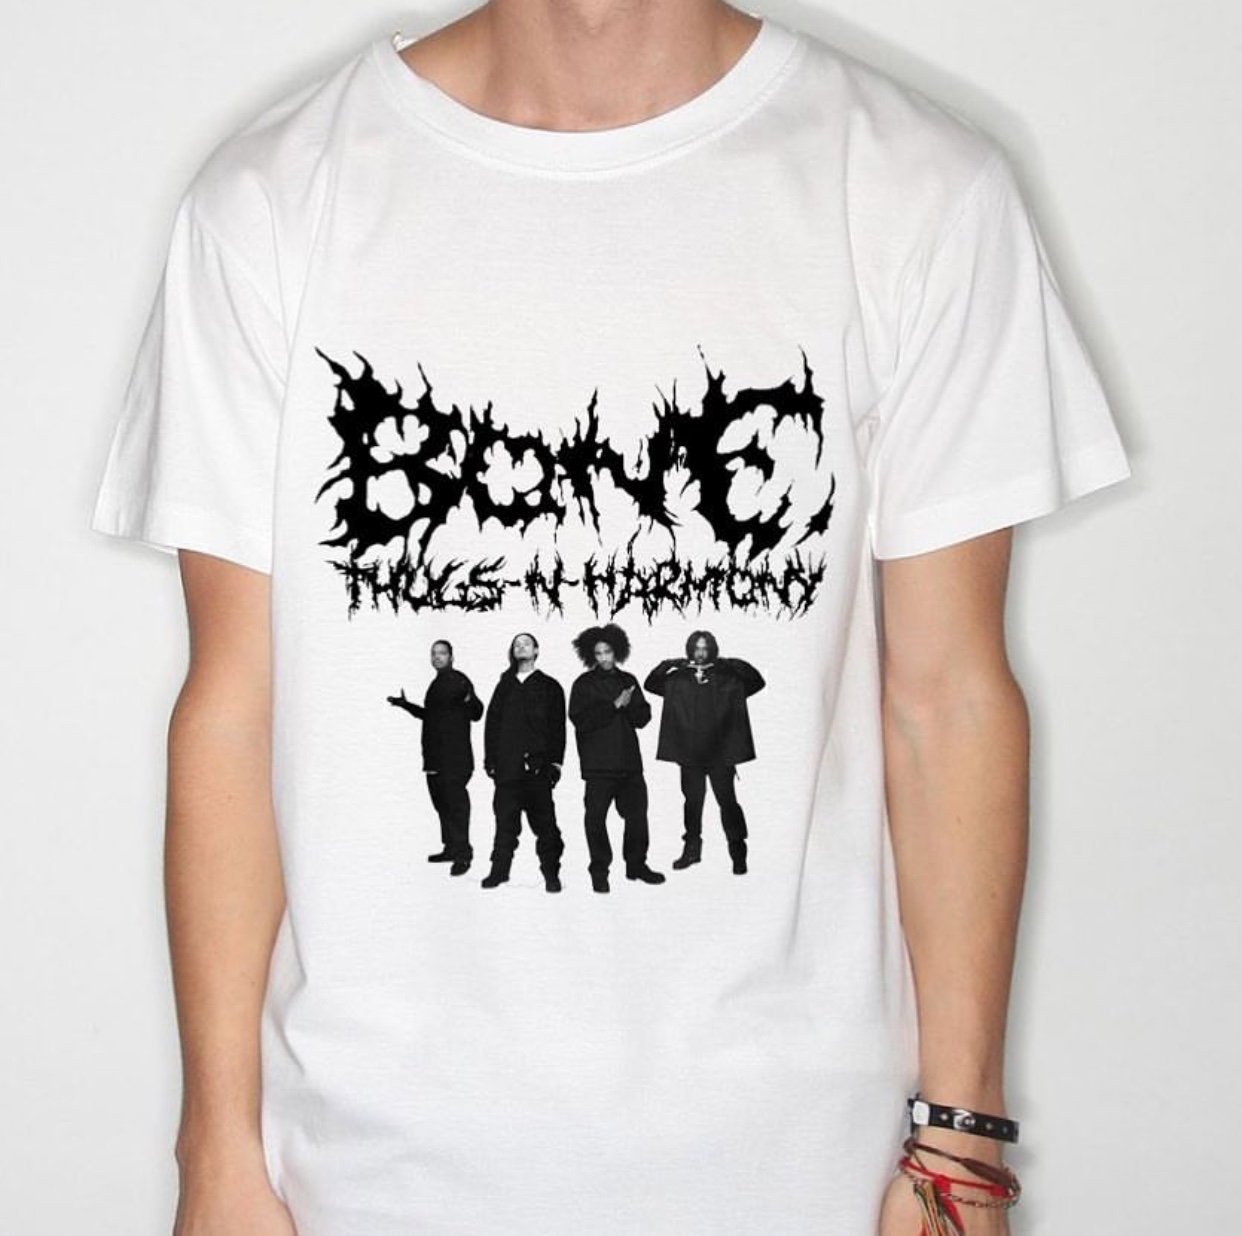 Bone Thugs Shirt Design